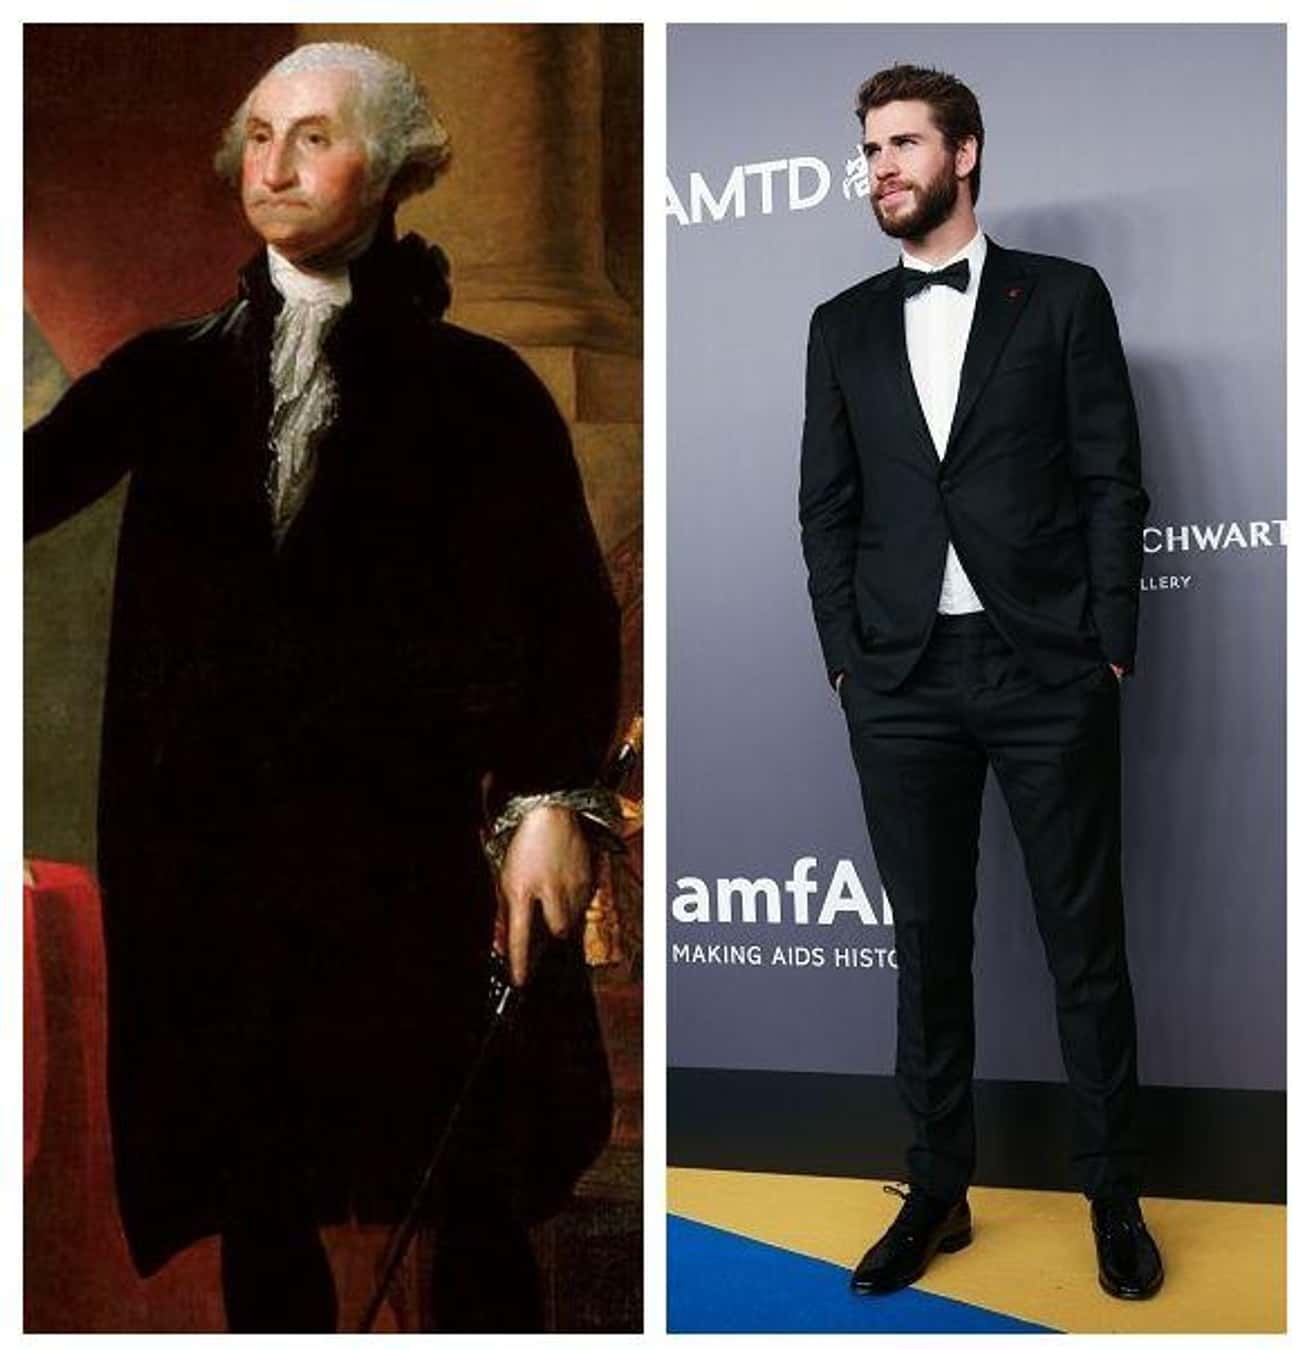 George Washington, 6'3&#34 is listed (or ranked) 4 on the list Here Are The Modern Height Counterparts To Some Of History's Most Important Figures